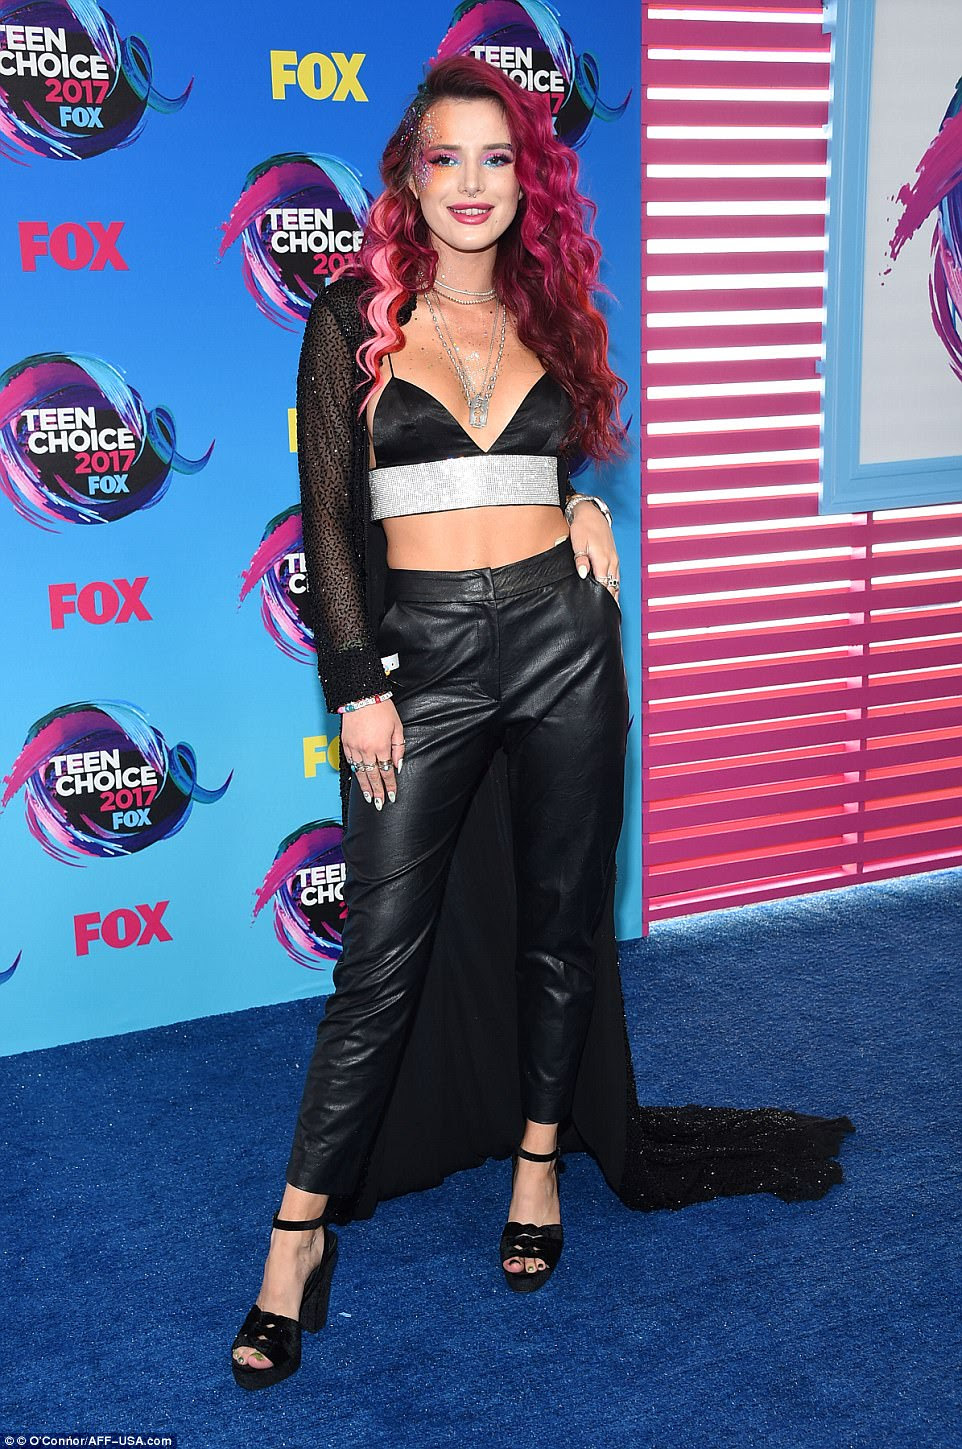 Edgy: Bella Thorne chose black leather for this year's Teen Choice Awards; the former Disney star flashed her stomach in a  glittering crop top with textured trousers